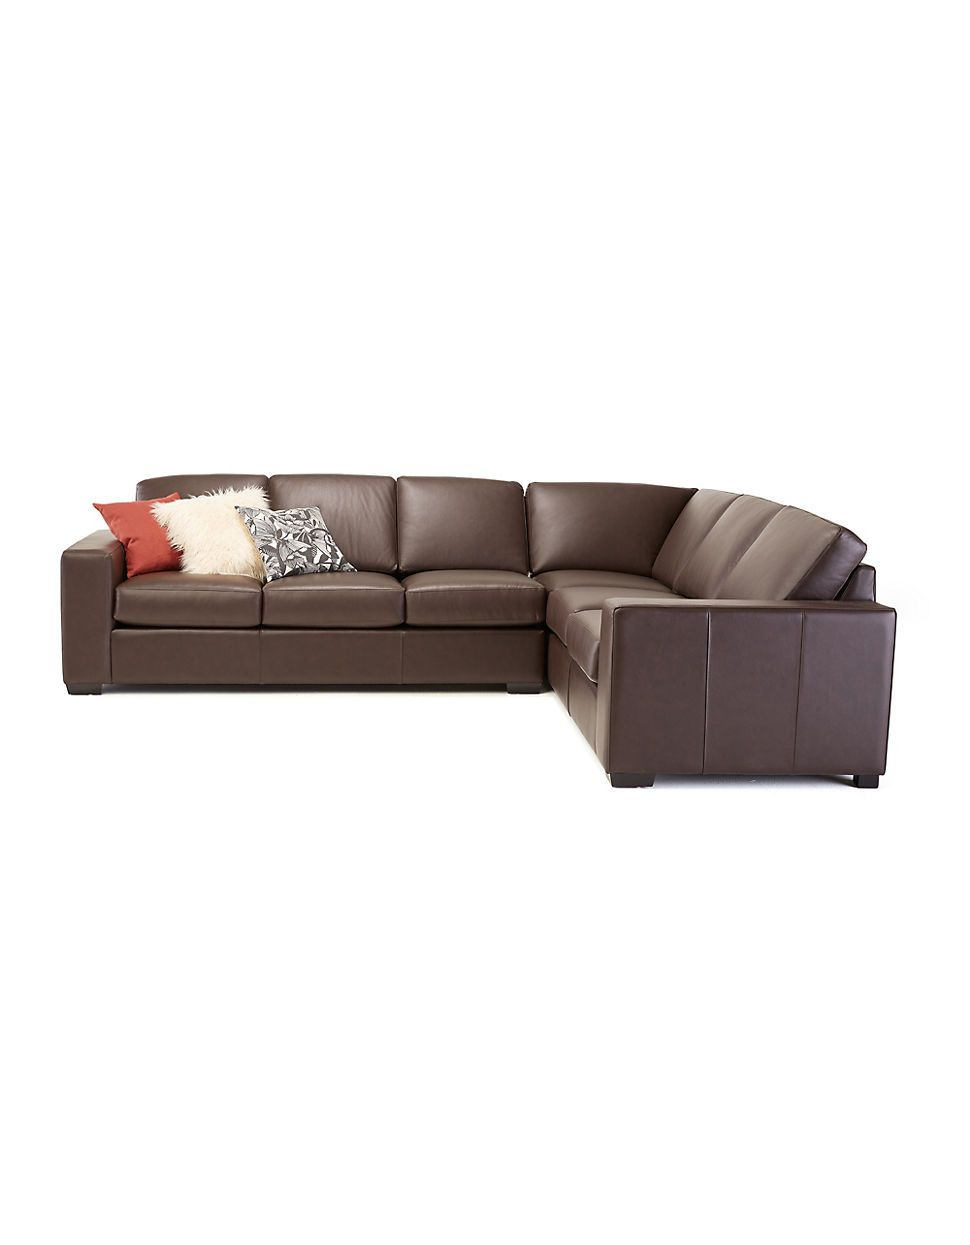 Terrific Brands Sofas Brockton 172 Wide Arm Leather Sectional Andrewgaddart Wooden Chair Designs For Living Room Andrewgaddartcom